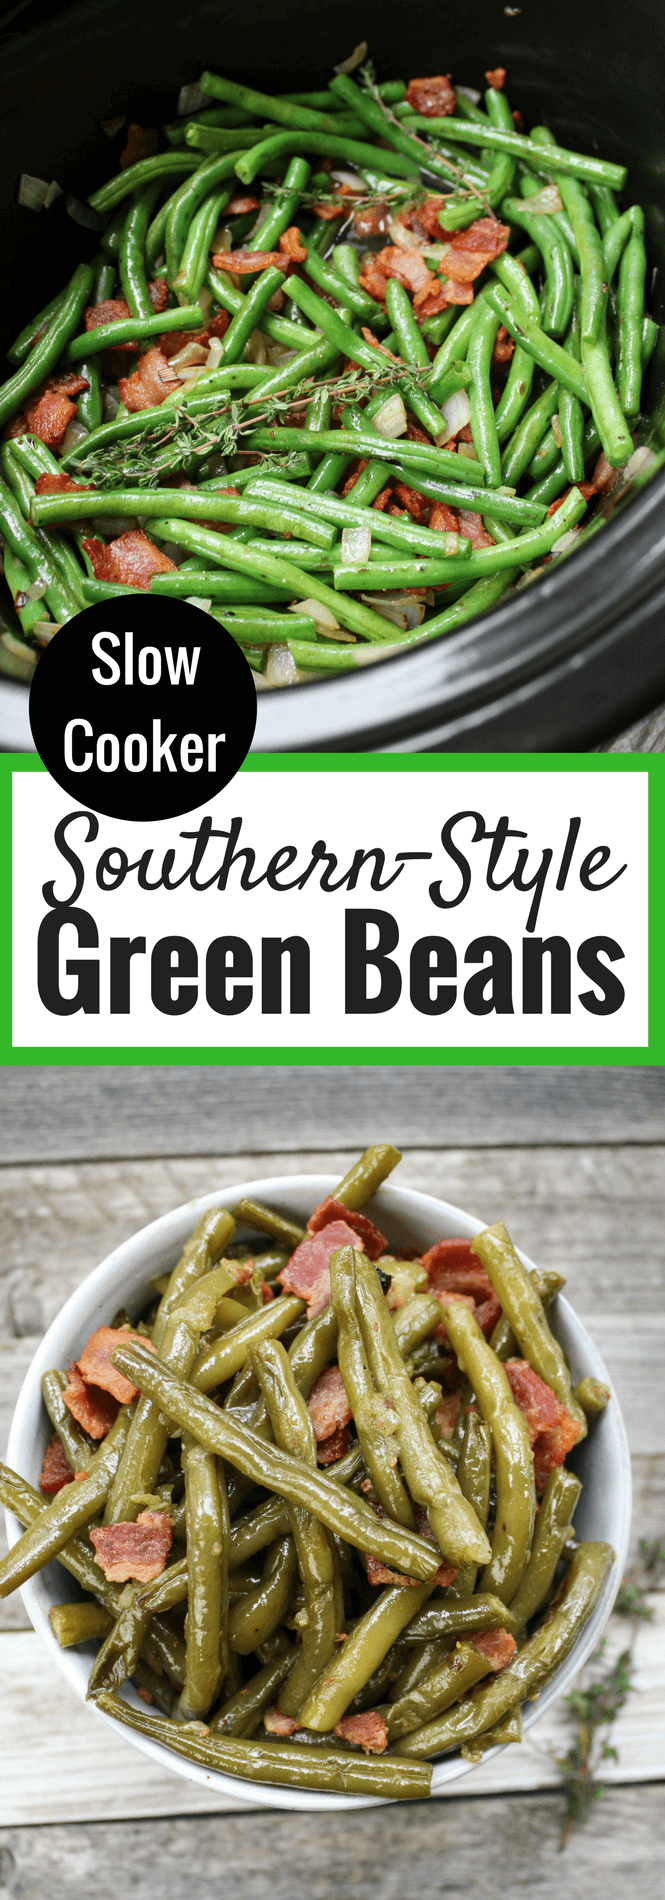 Crockpot Southern-Style Green Beans